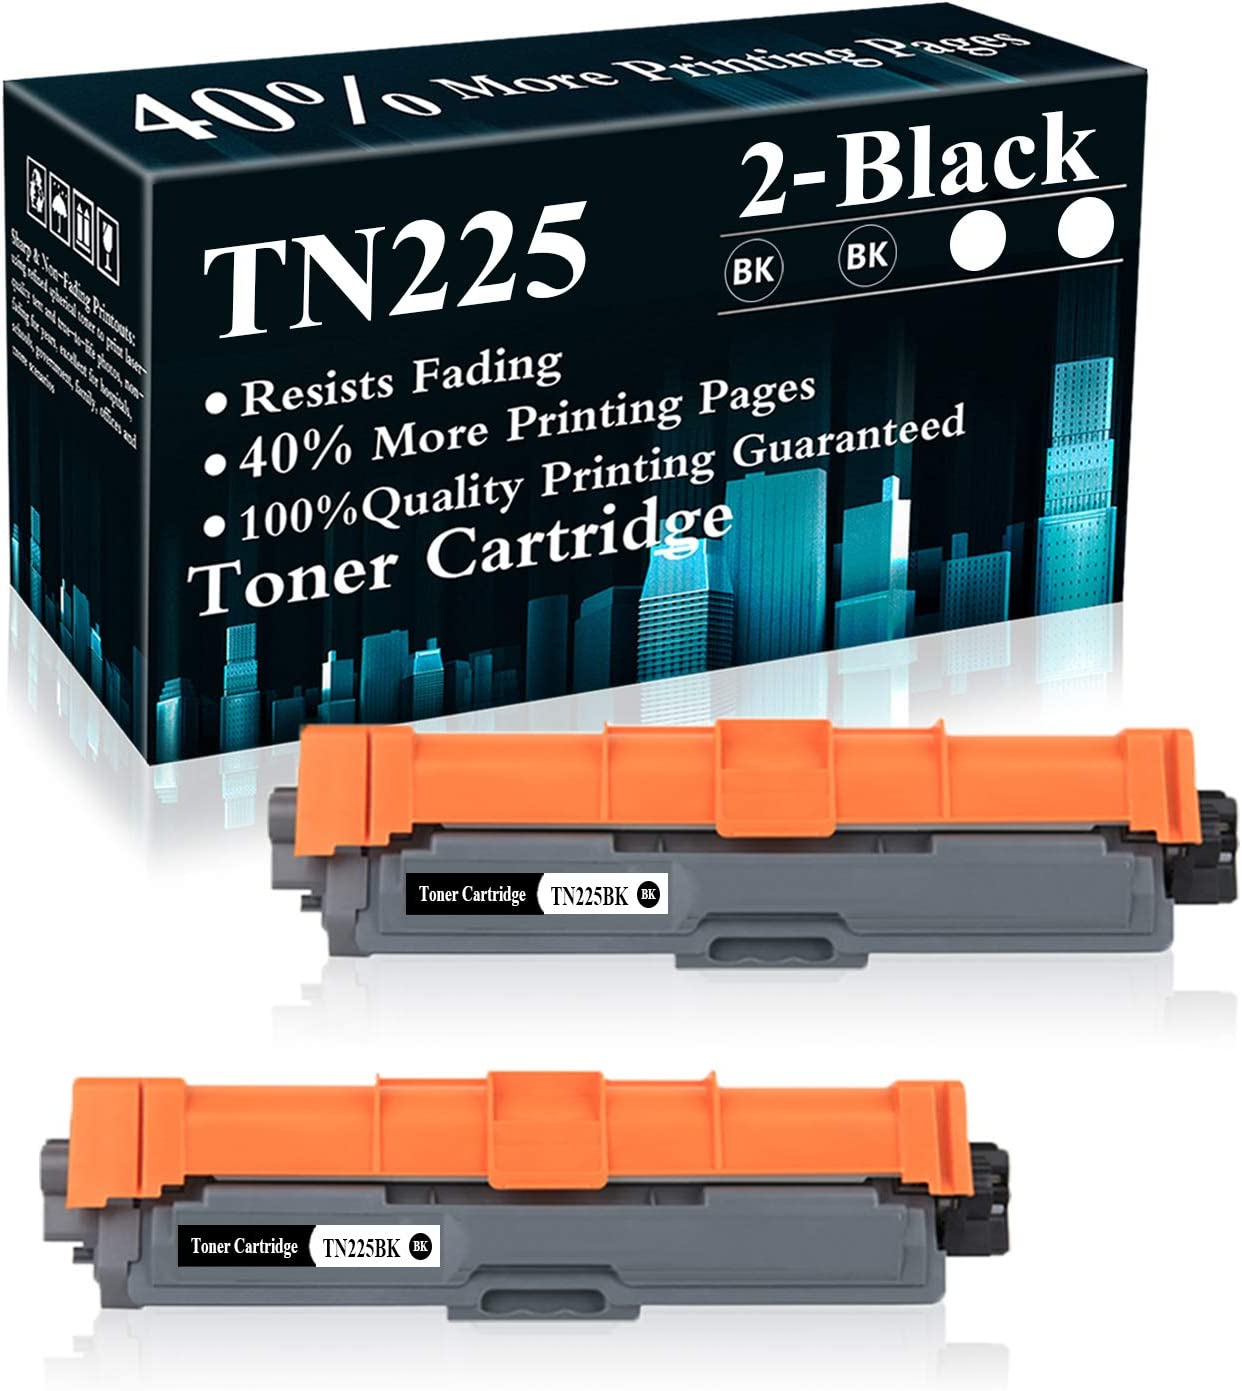 2 Black TN225 TN225BK Animer and price Super-cheap revision Toner for Cartridge Replacement Brother